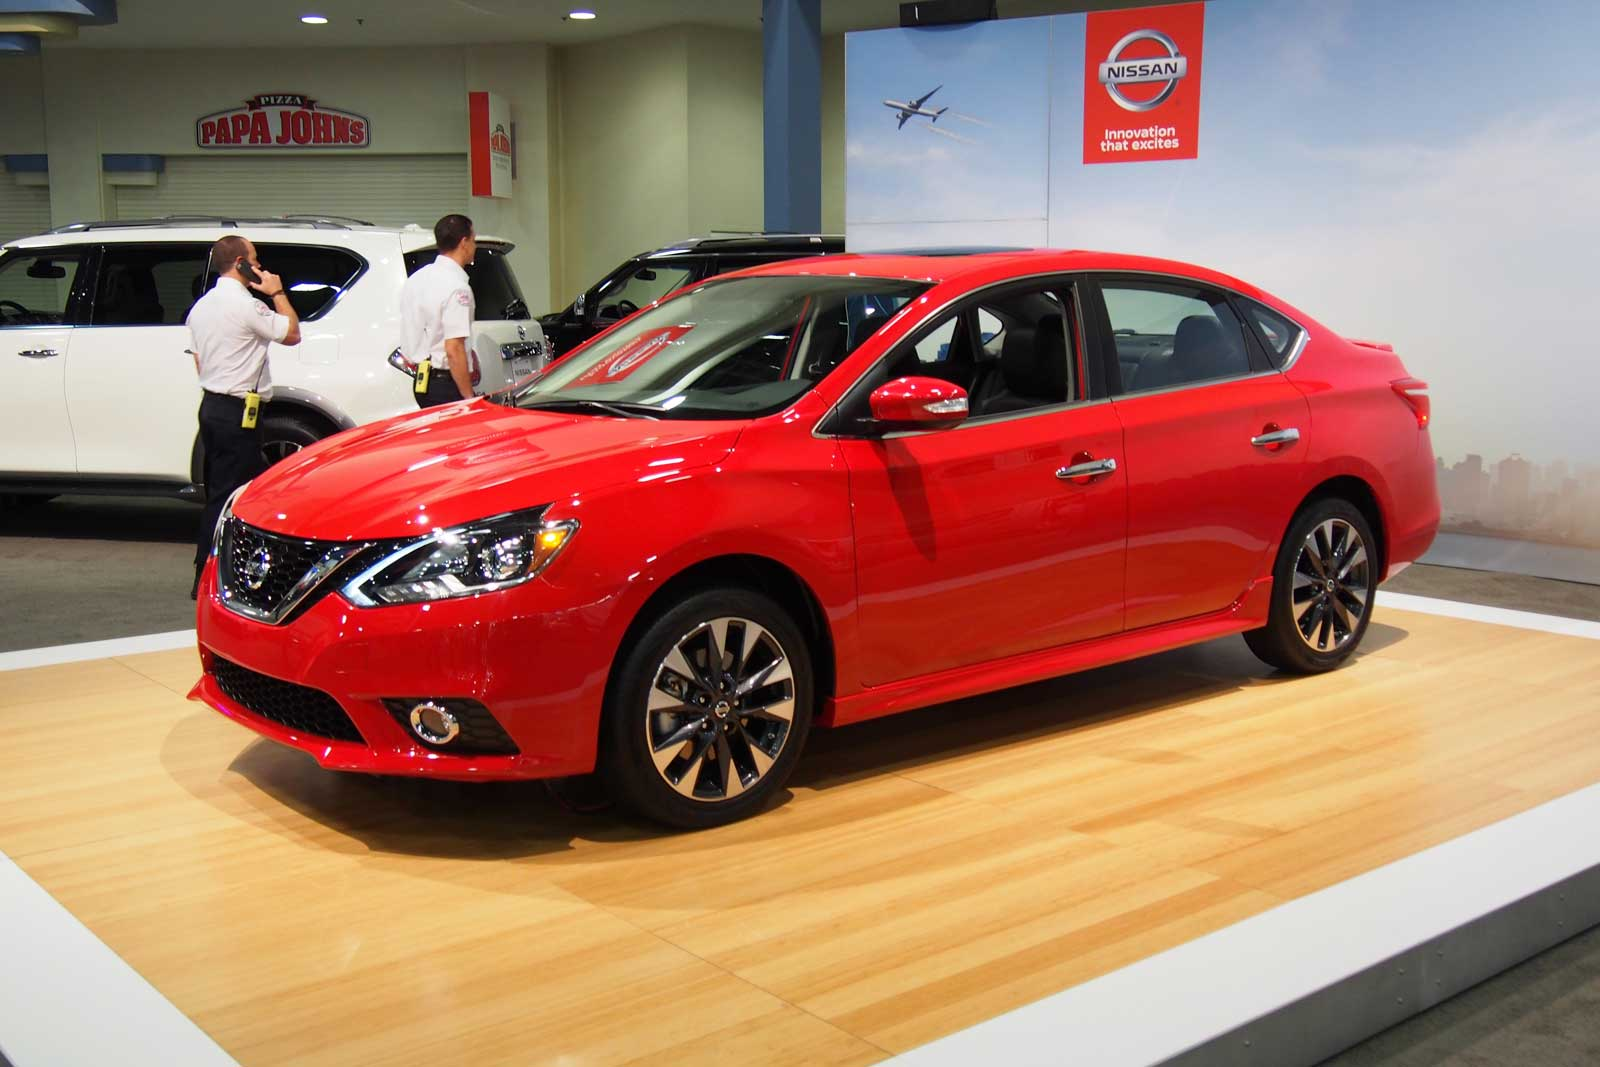 2017 nissan sentra sr turbo finally debuts news. Black Bedroom Furniture Sets. Home Design Ideas